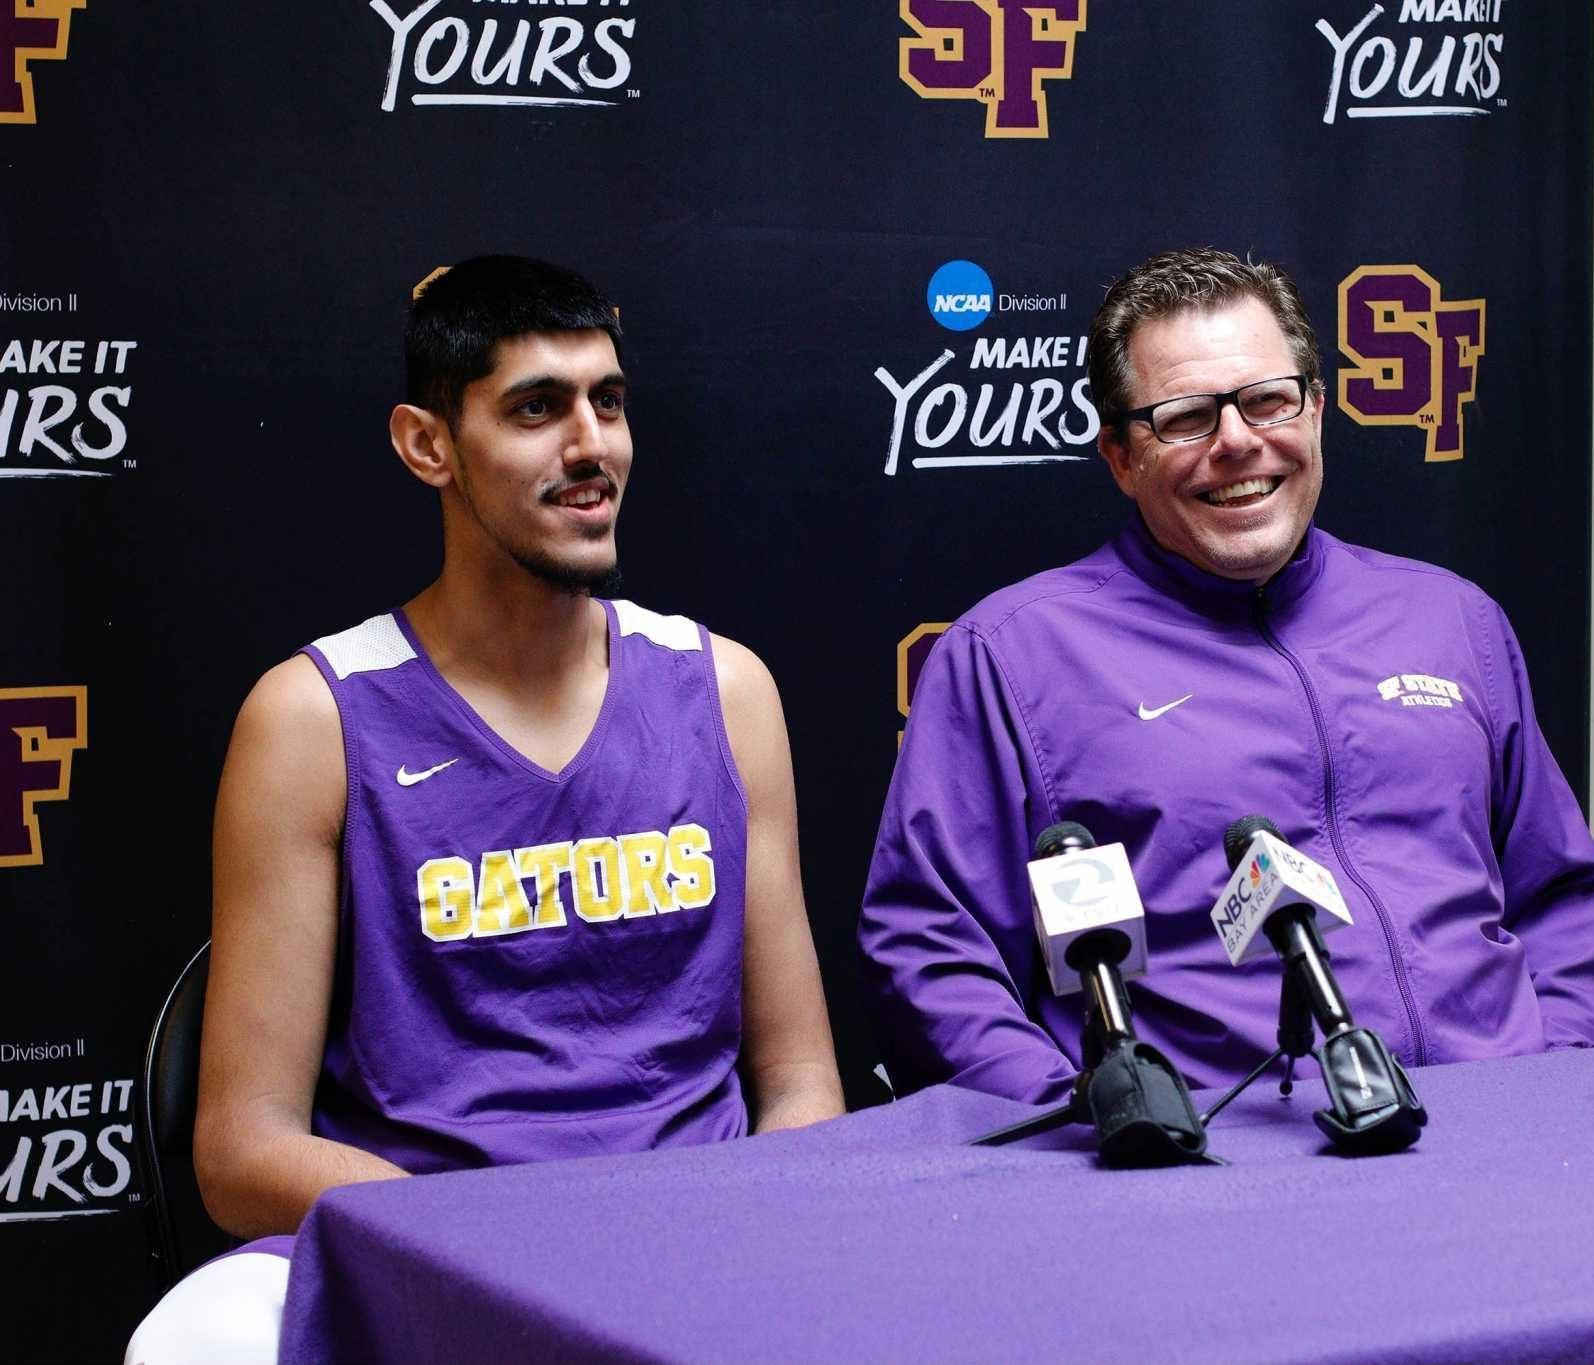 (L-R) Aj Kahlon (24) and Head Coach Paul Trevor talk to ABC, NBC, and KTVU during a press conference in the hallway of The Swamp at SF State on March 2, 2017 in San Francisco, Calif. (Mason Rockfellow/ Xpress)